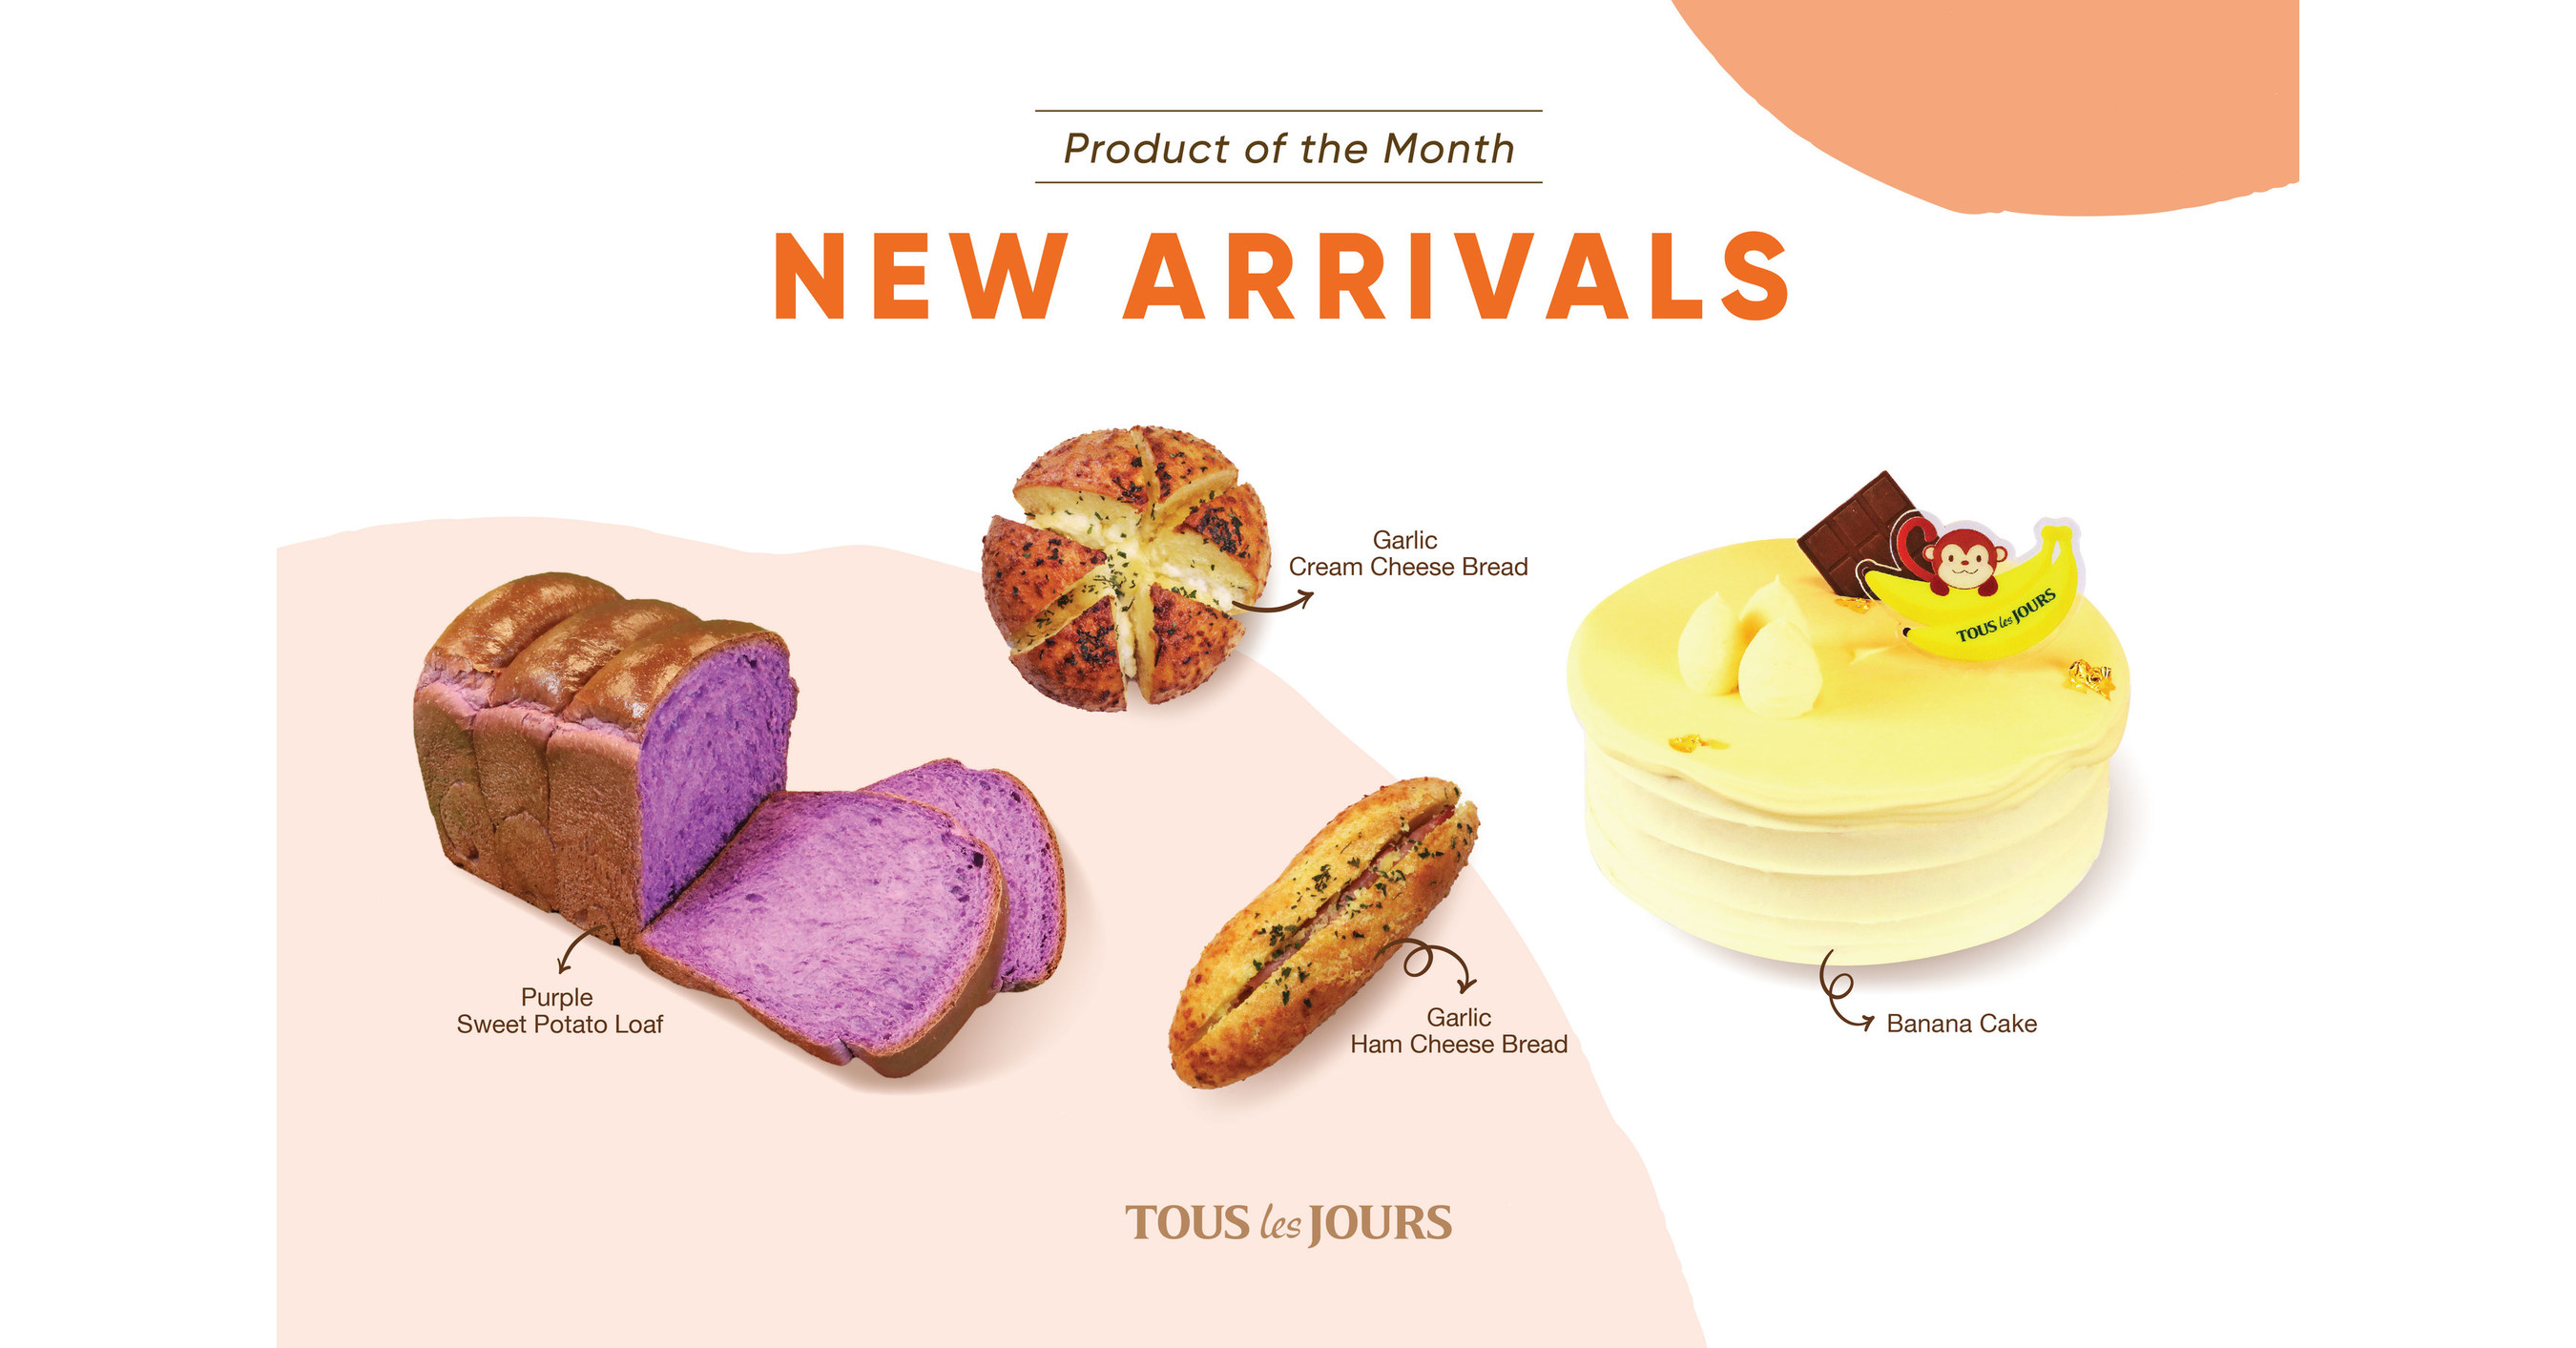 www.prnewswire.com: TOUS Les JOURS Bakery to Launch Purple Sweet Potato Bread and More